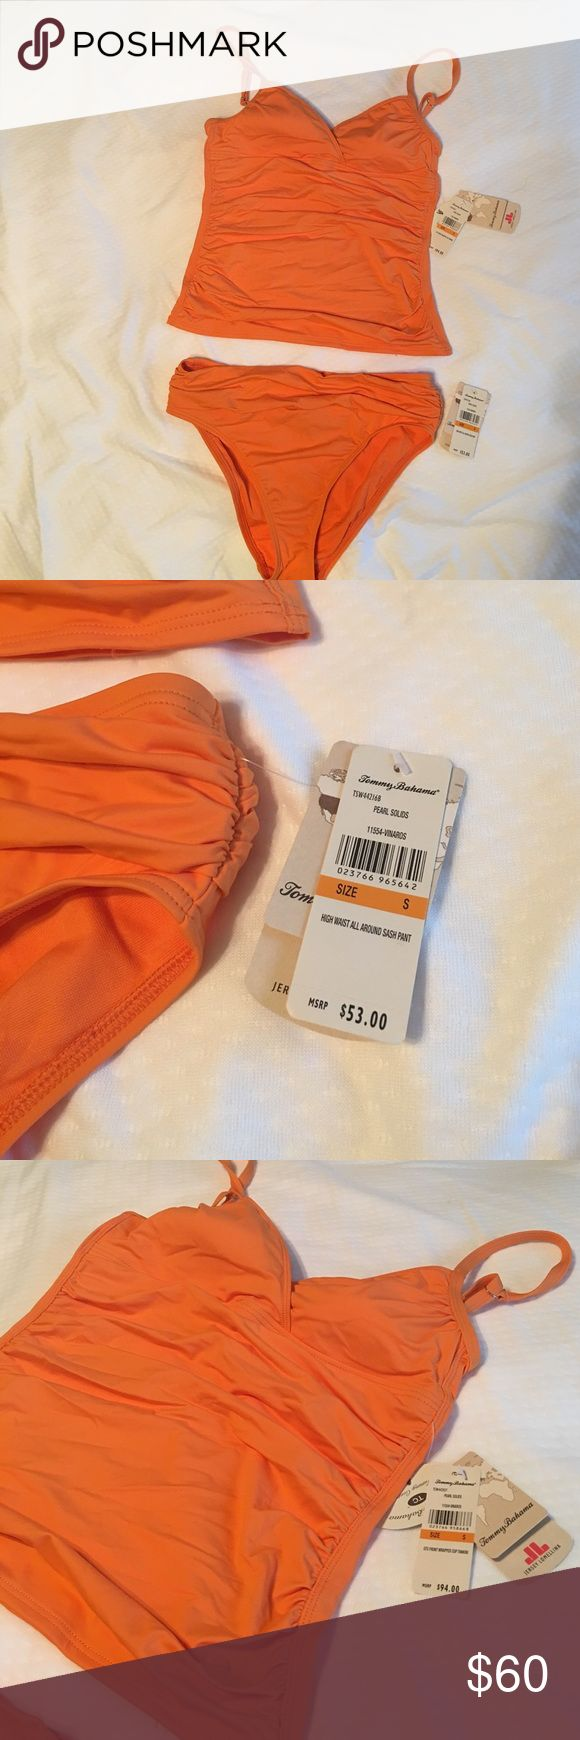 Tommy Bahama Tankini ❗️NWT❗️Tommy Bahama orange tankini. Bottoms are high waist according to tag. Never used!! Tommy Bahama Swim